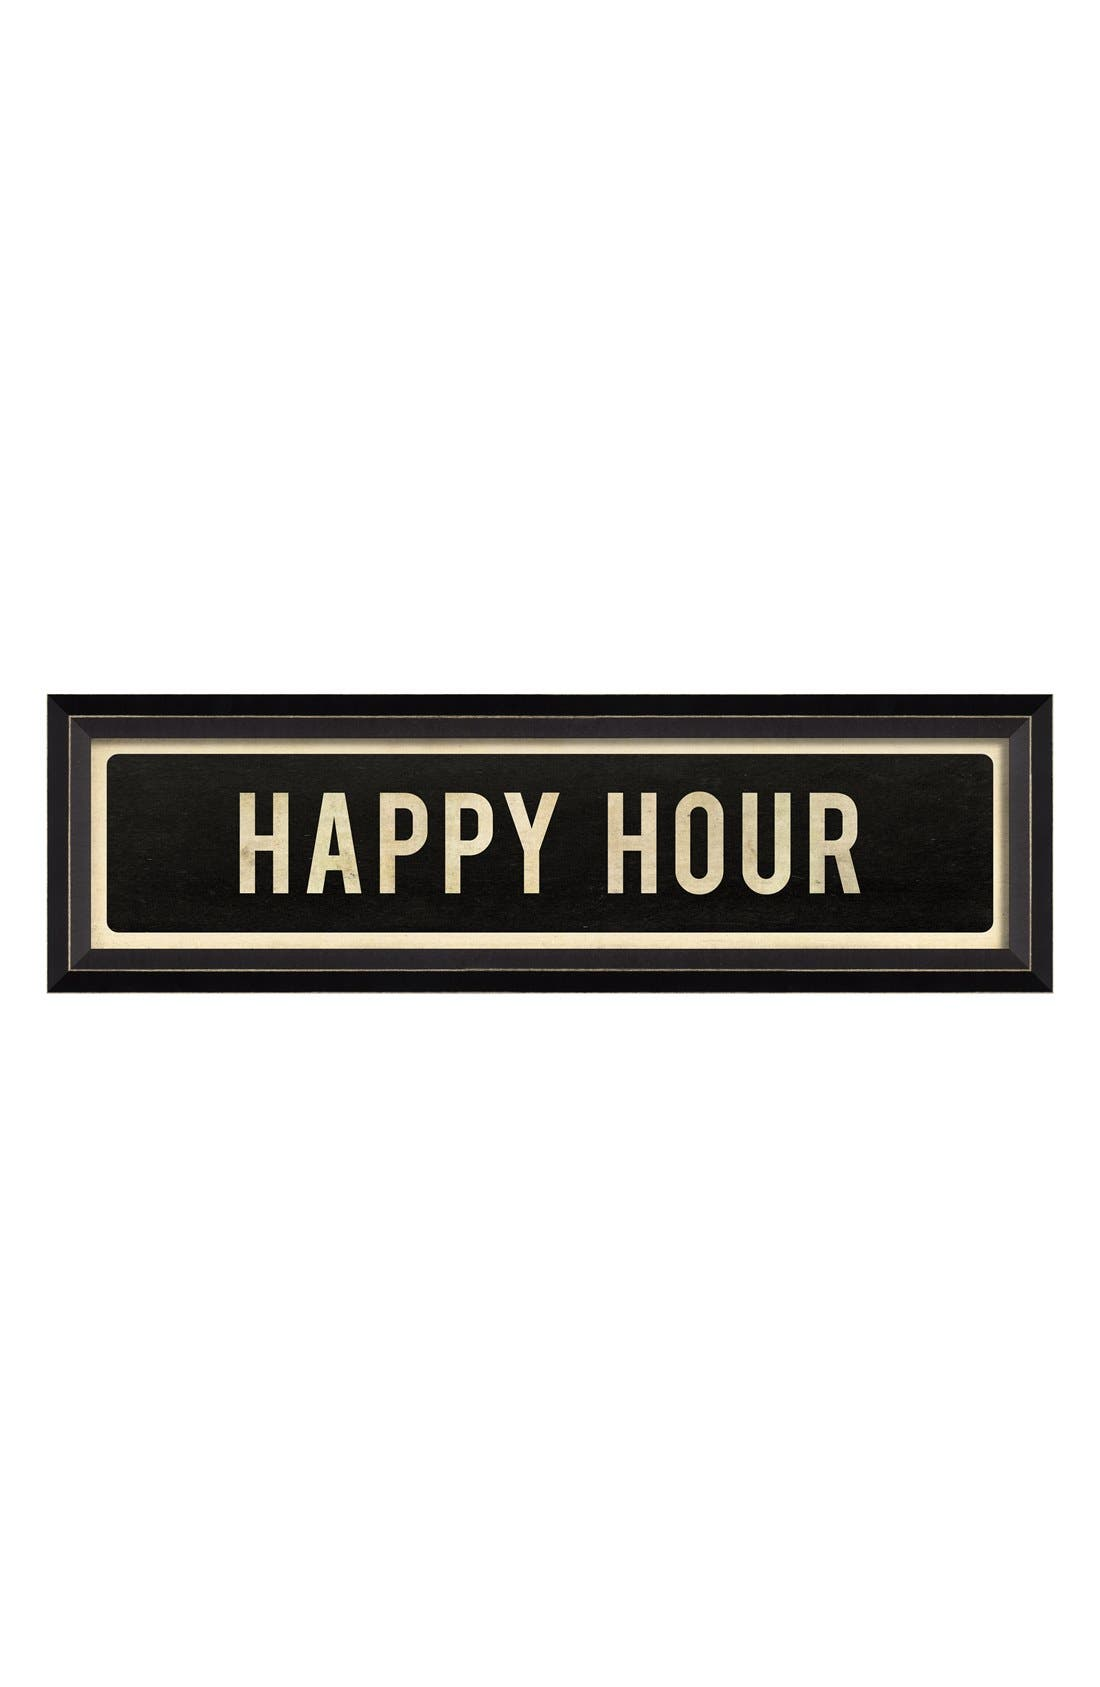 Main Image - Spicher and Company 'Happy Hour' Vintage Look Street Sign Artwork